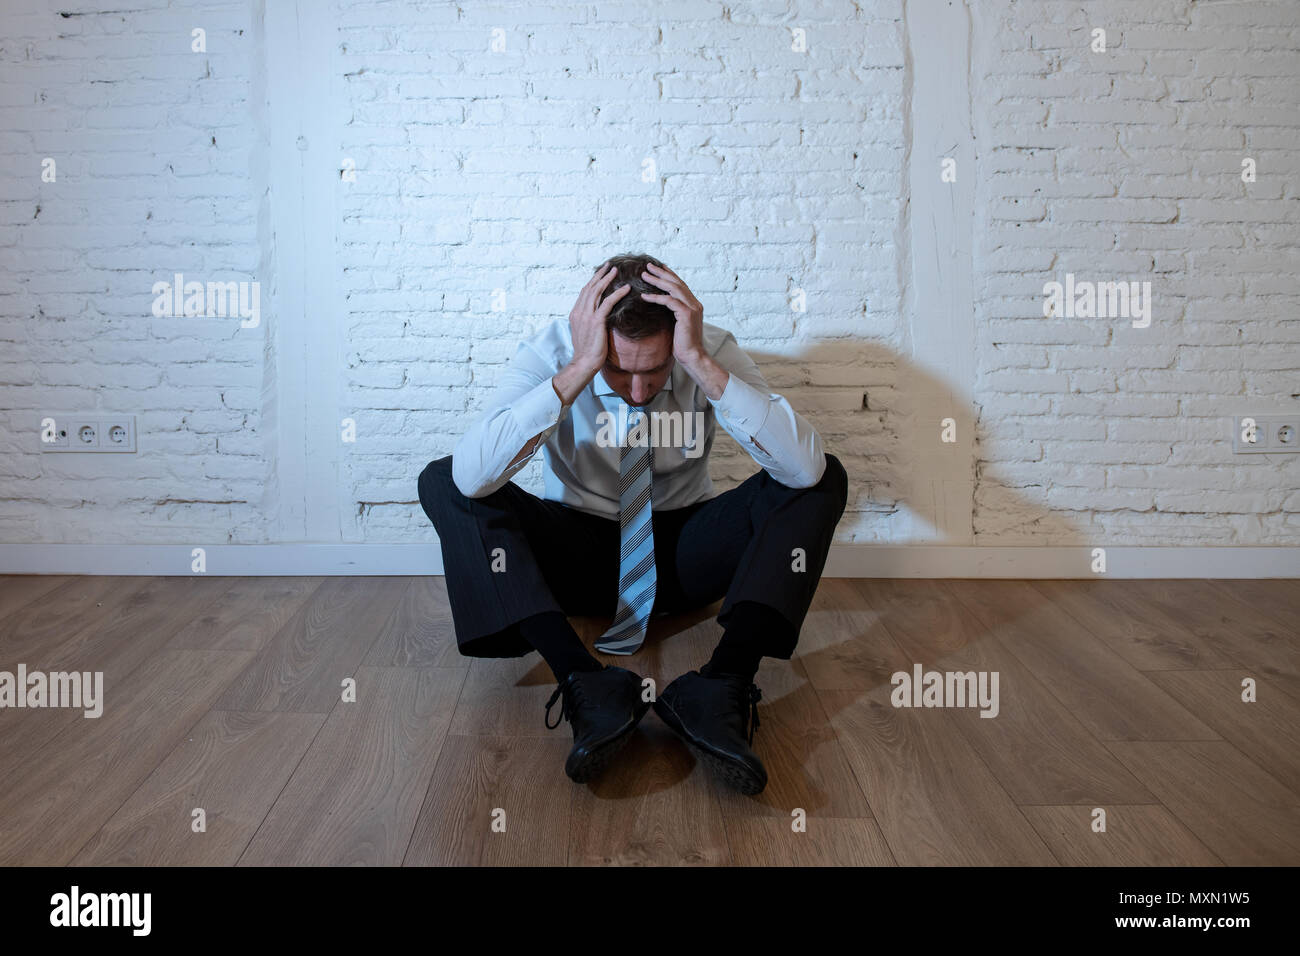 depressed business man feeling sad, lonely and suffering from anxiety leaning on a white wall at home in mental health depression concept - Stock Image